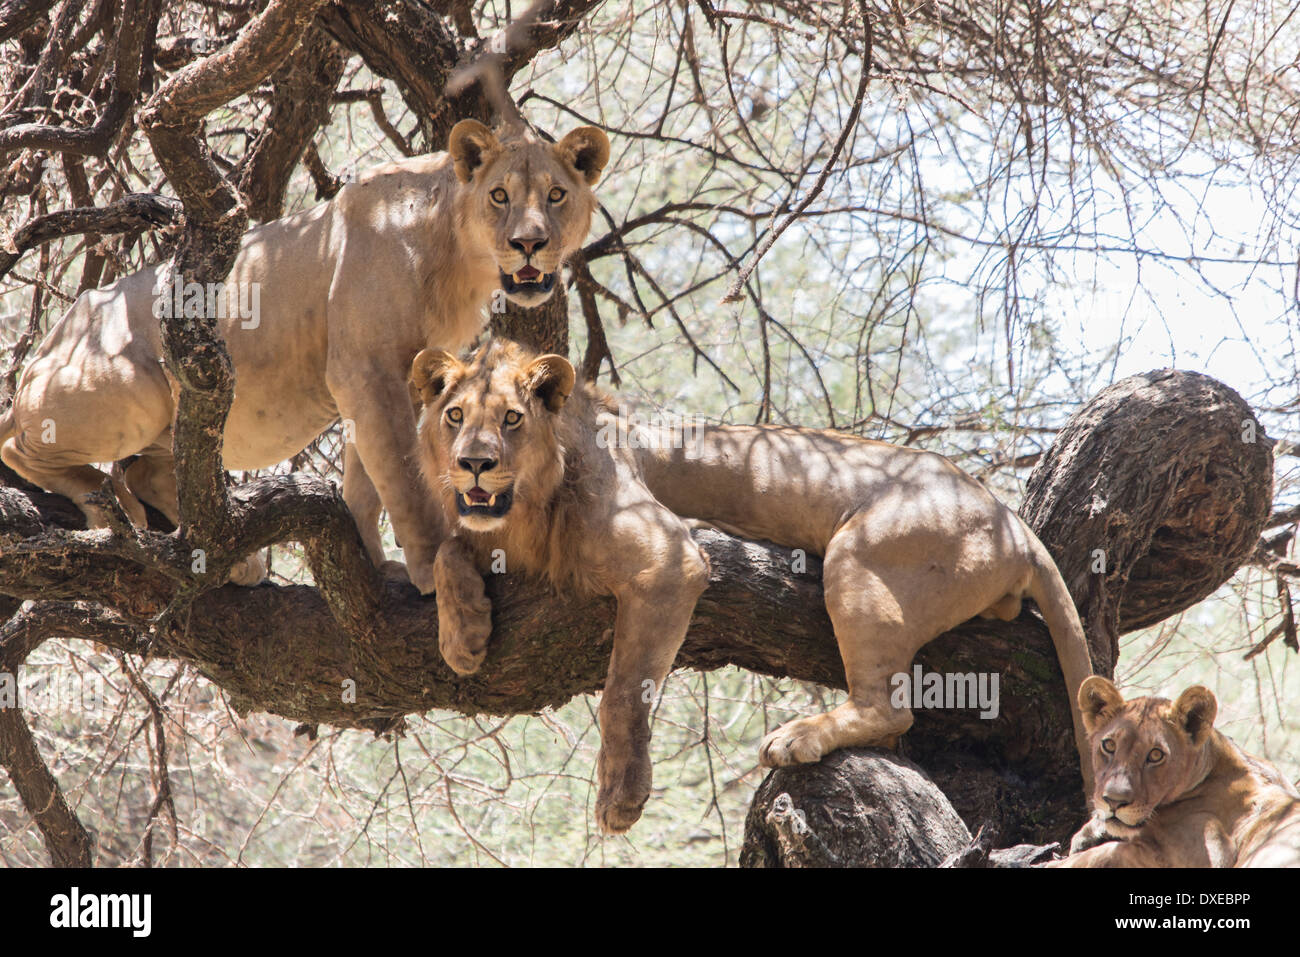 A family of lions in a tree in Tanzania - Stock Image